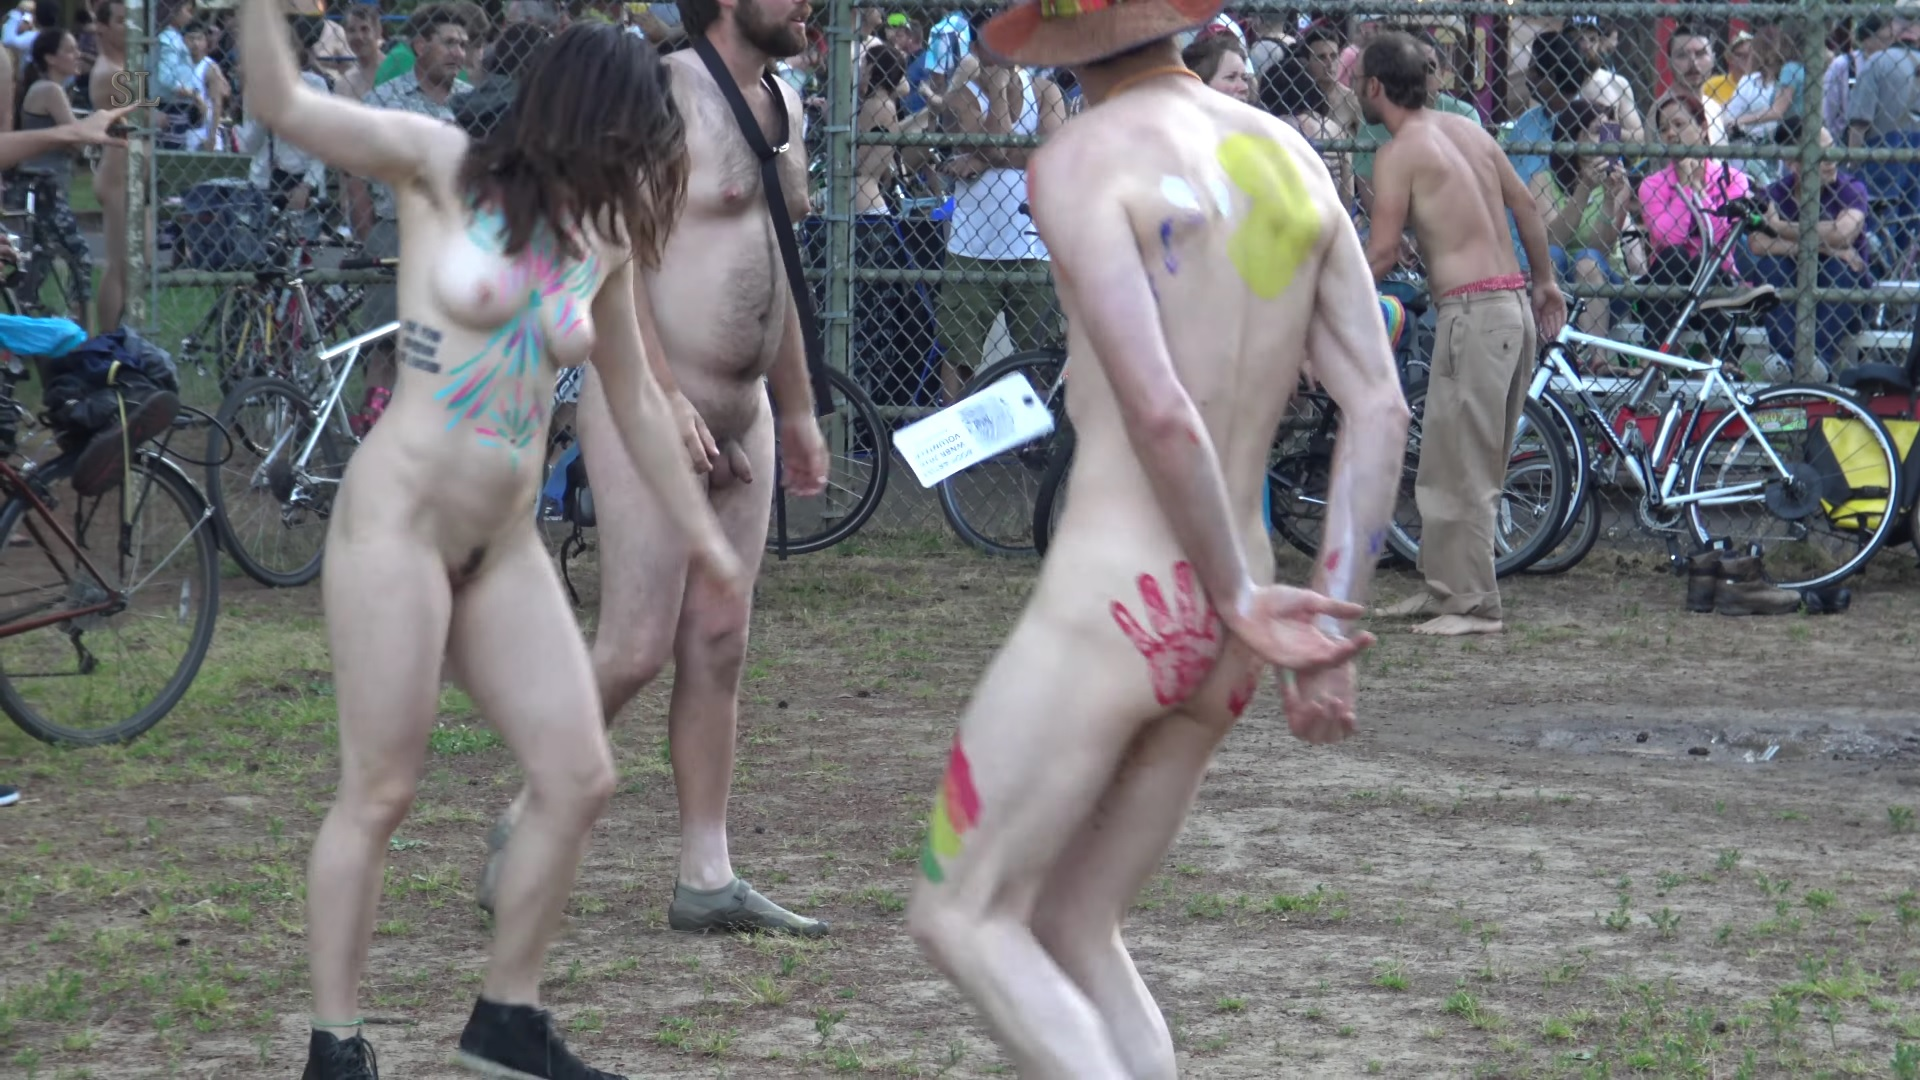 Naked dance party in public [4K]